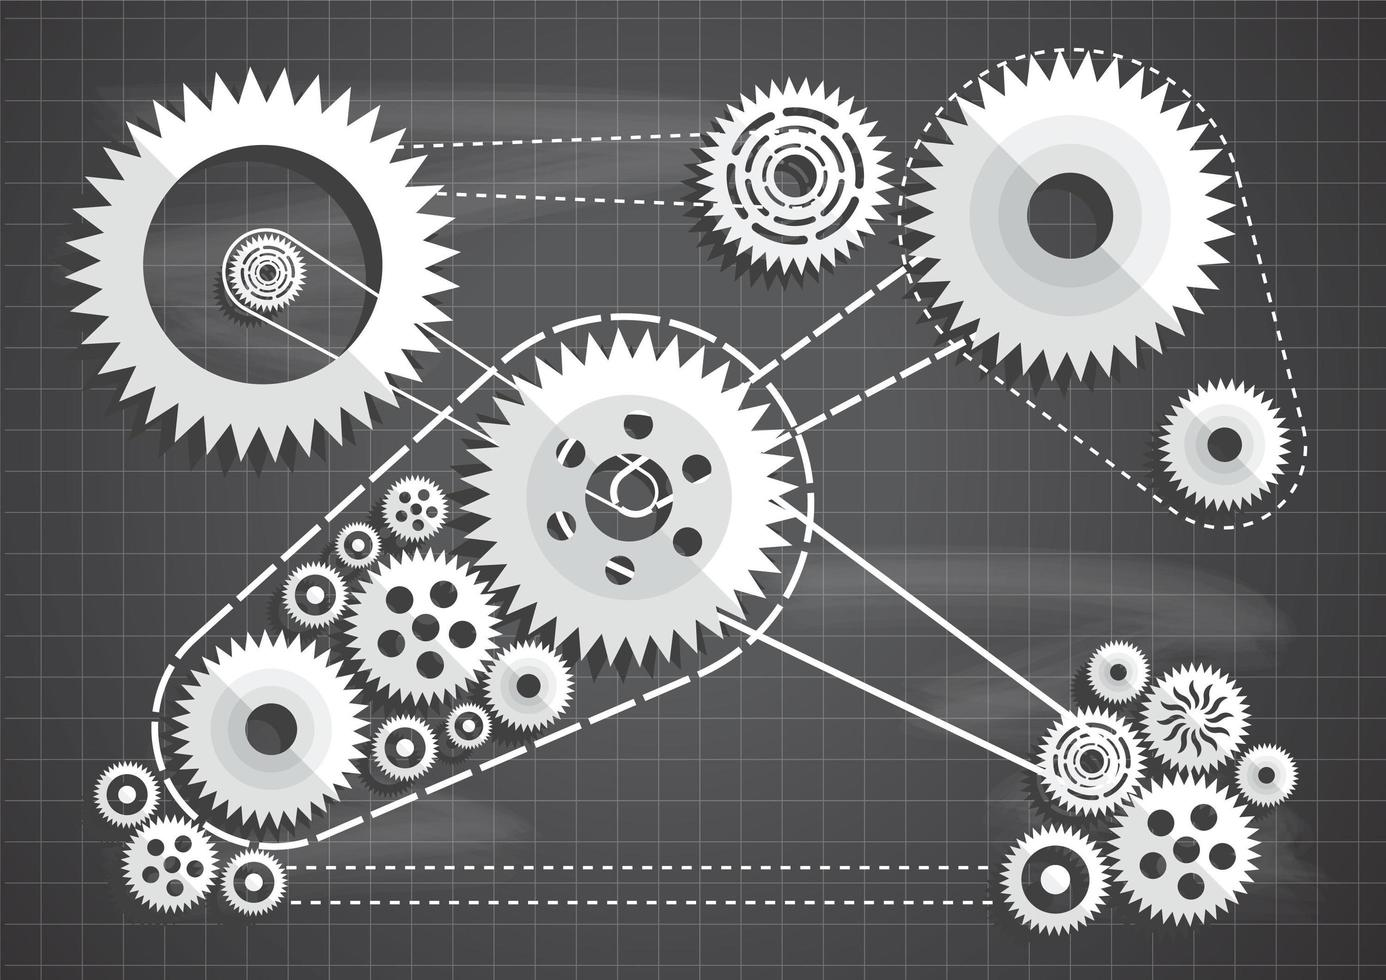 Paper cut gears and cogs on blueprint chalkboard vector